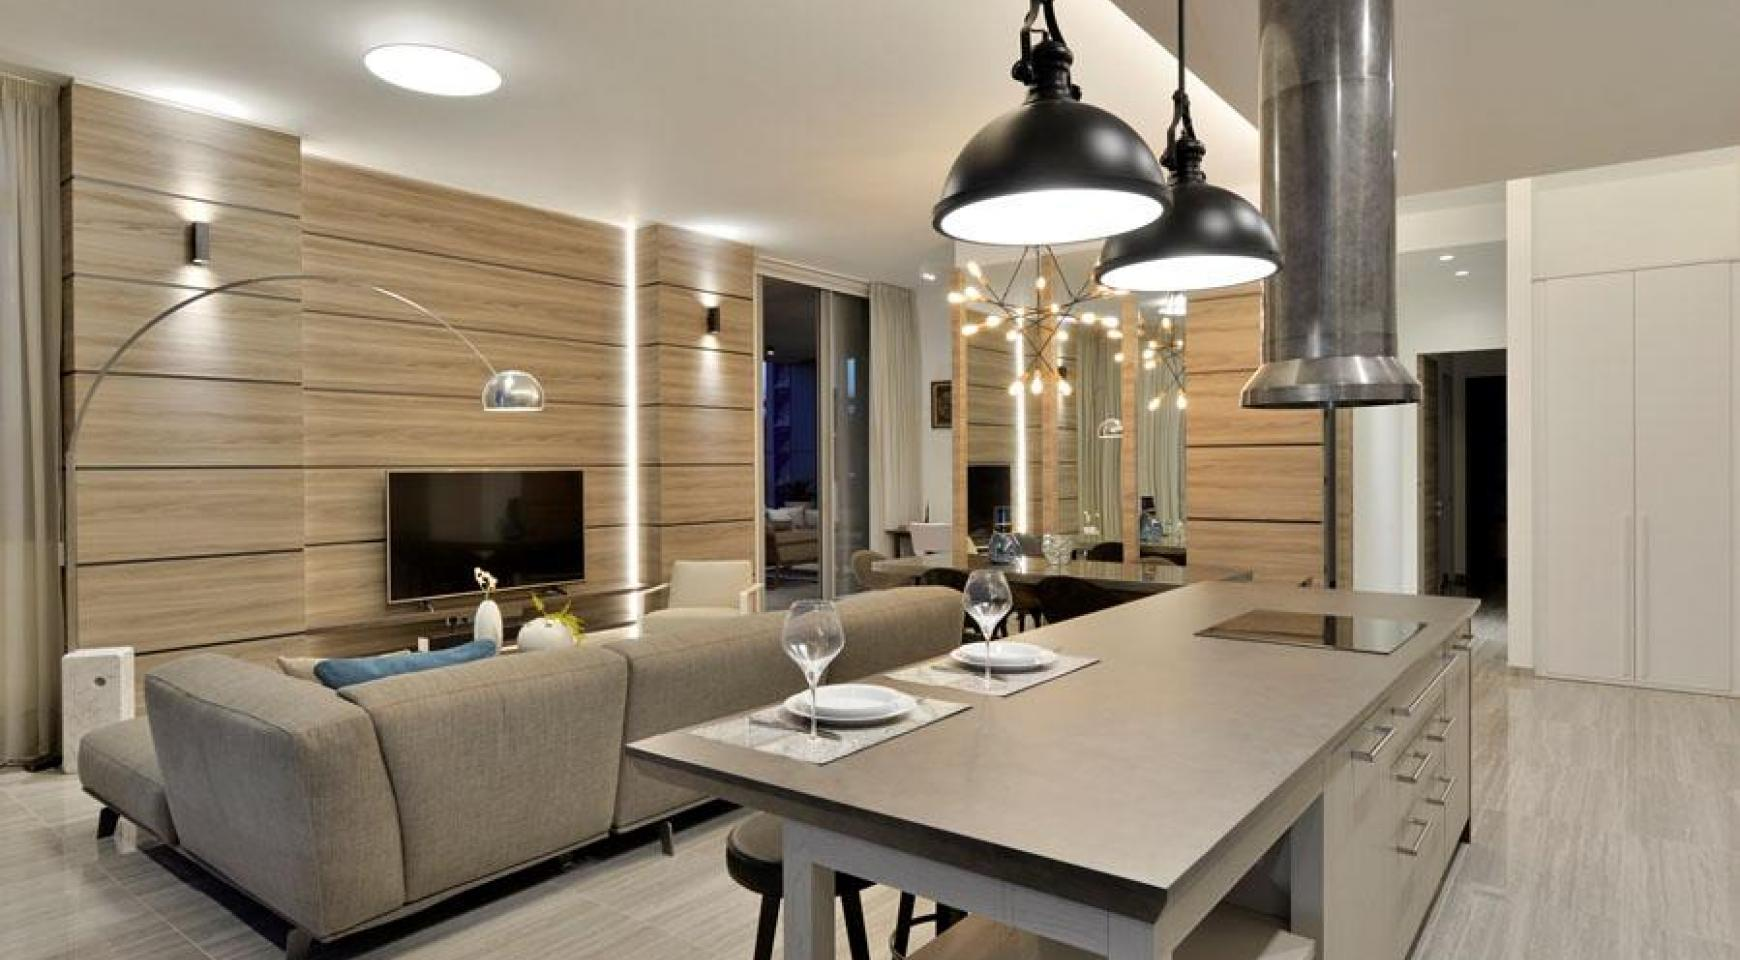 Luxurious 3 Bedroom Apartment within a New Complex near the Sea - 11